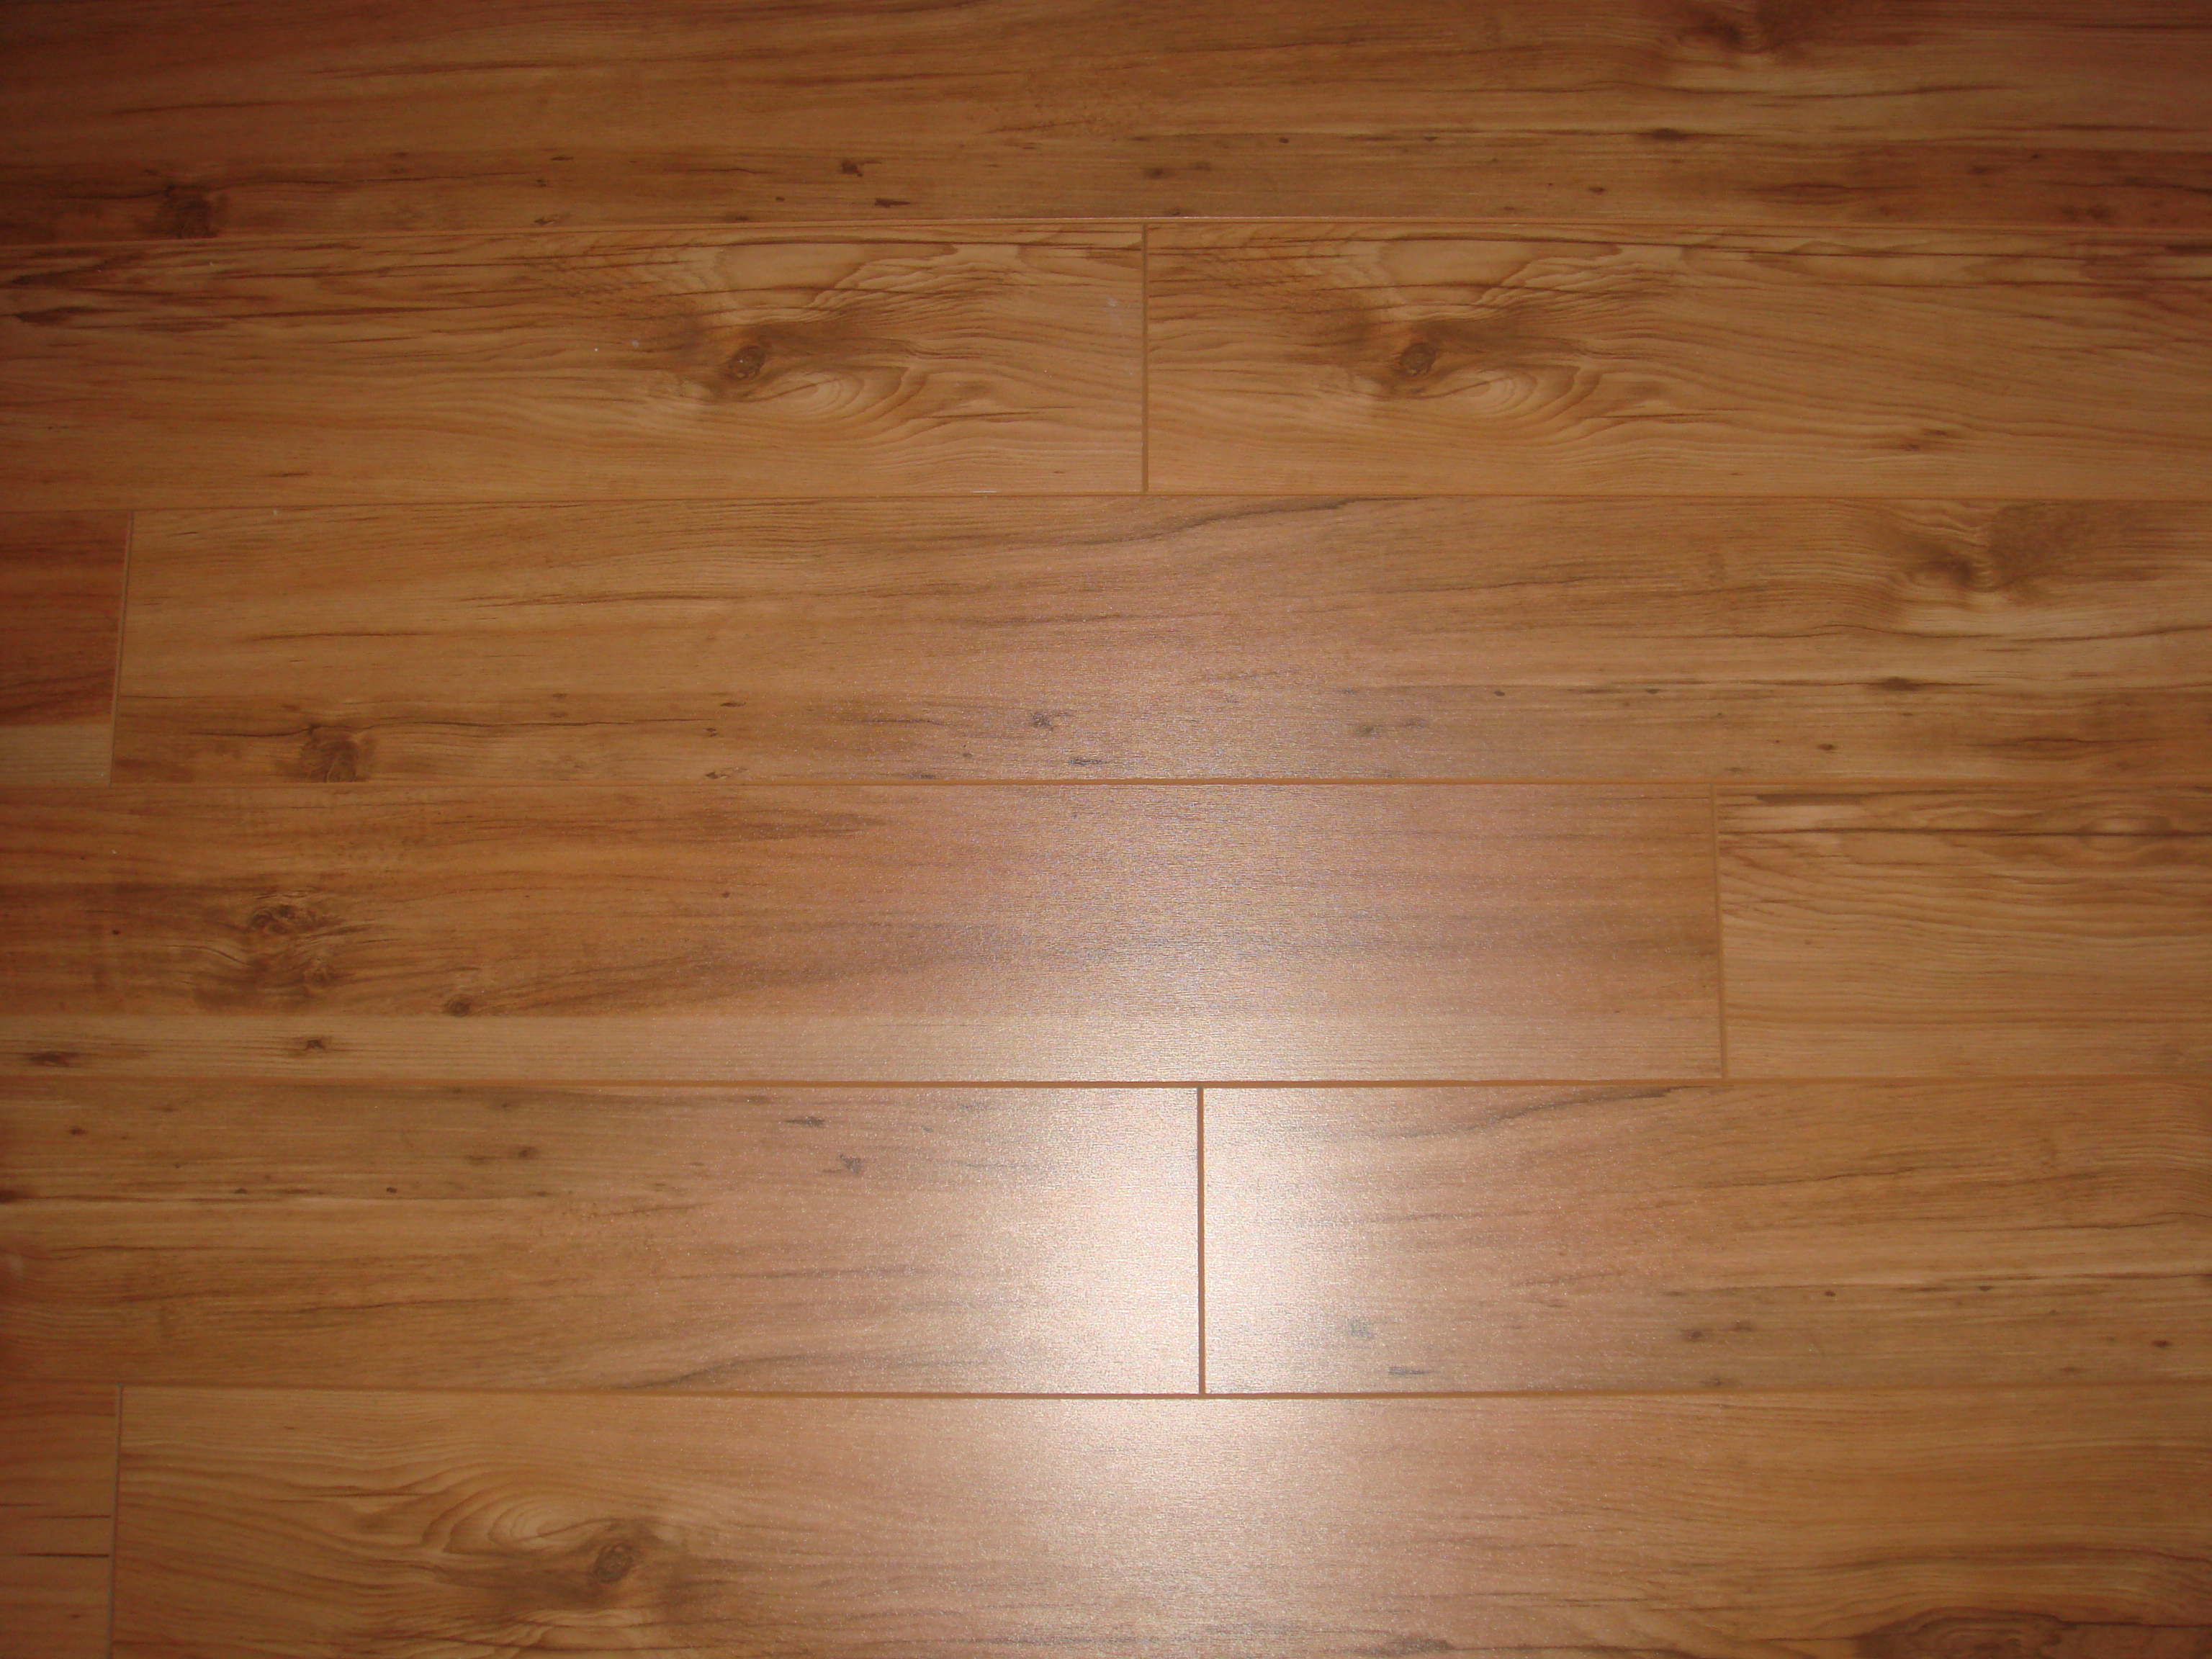 The pros and cons of laminate wood flooring wood floors plus for Laminated wood